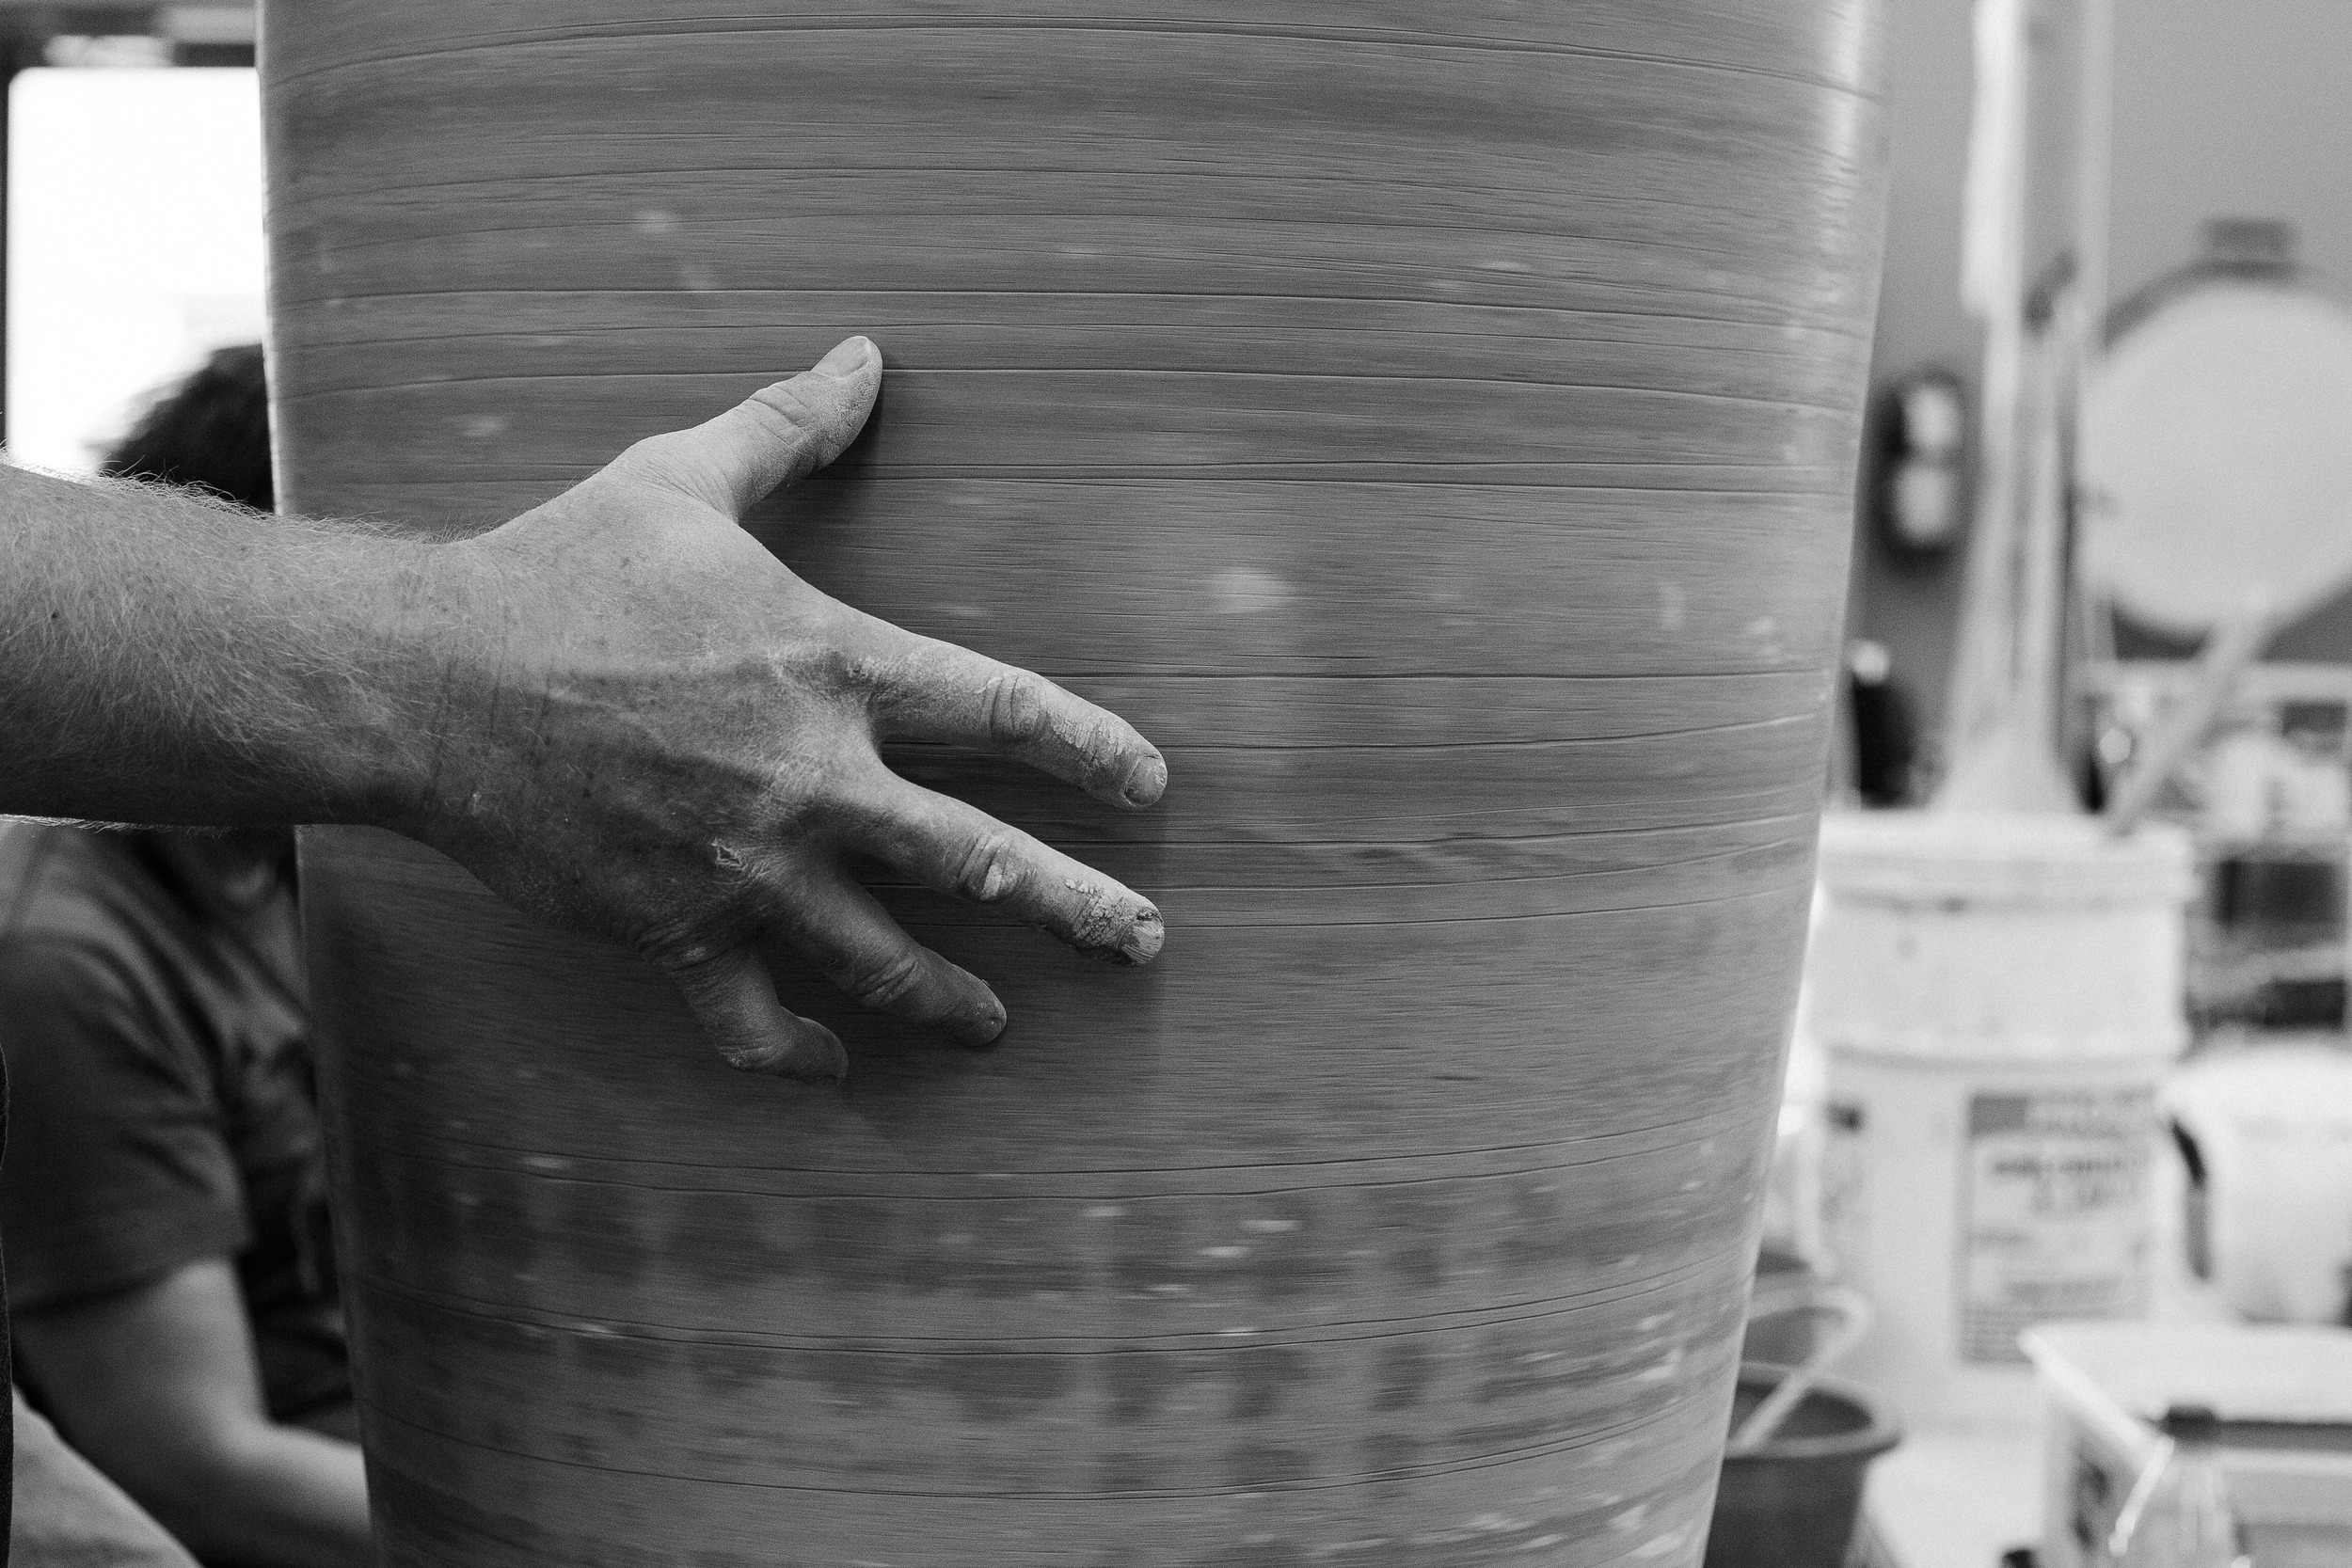 Potter's hand black and white detail clay pot St George UT